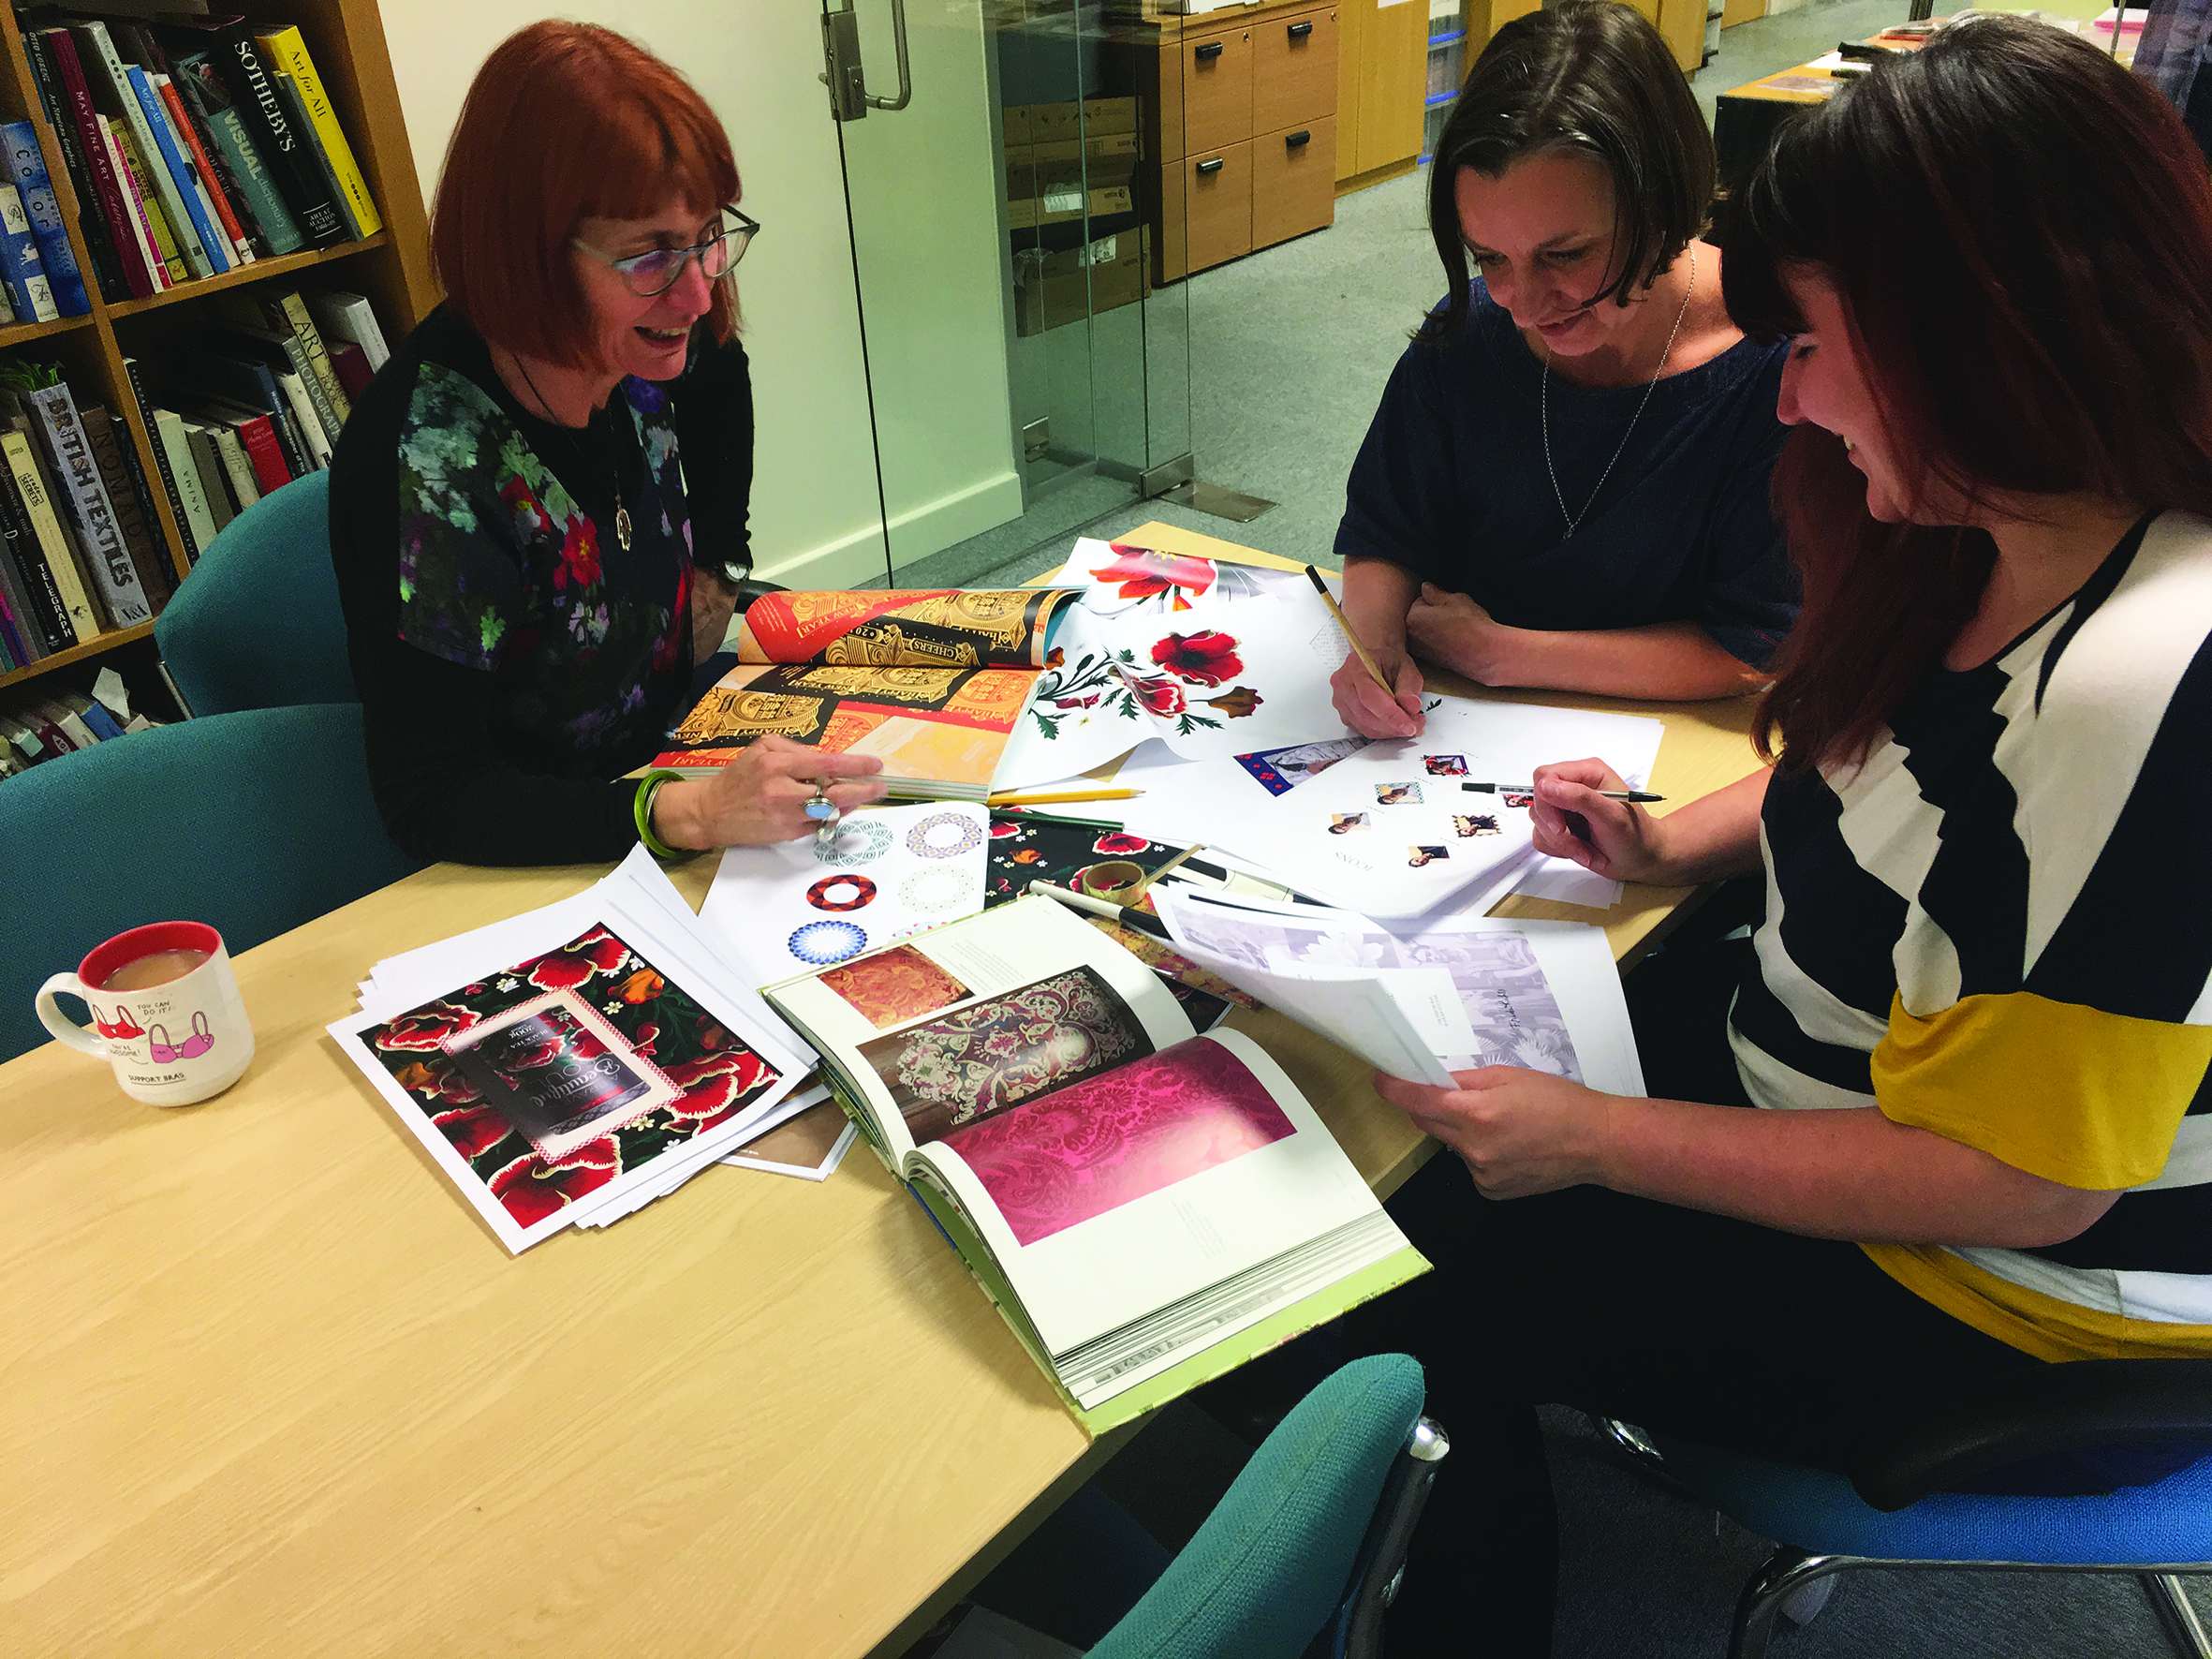 Above: (left-right) Paper Rose's Joanne Eccles, Philippa Phipps and Reggie Pugh working on the ticket design.